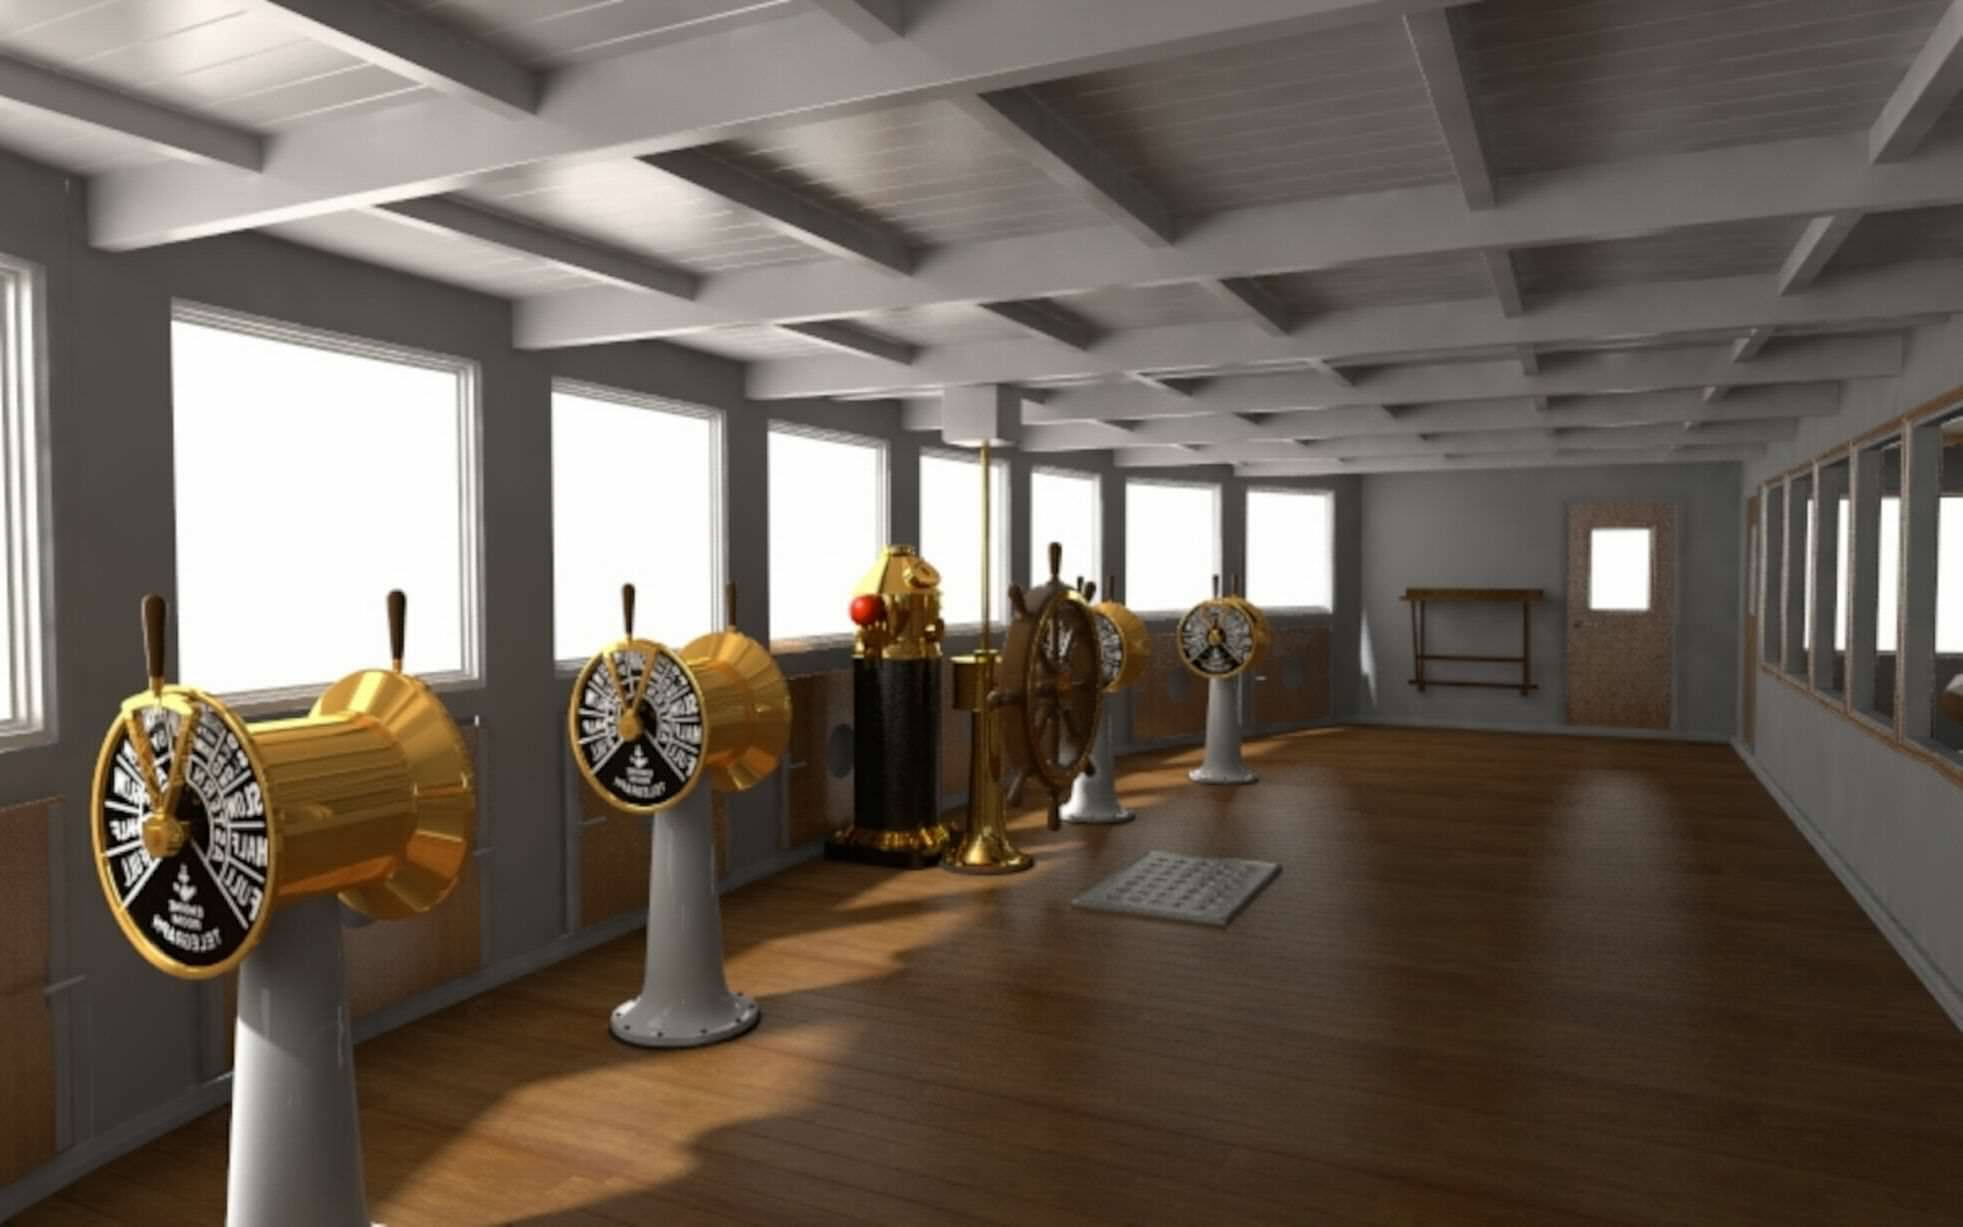 Incredible new photos give first look inside 39 titanic 2 39 for Pictures inside